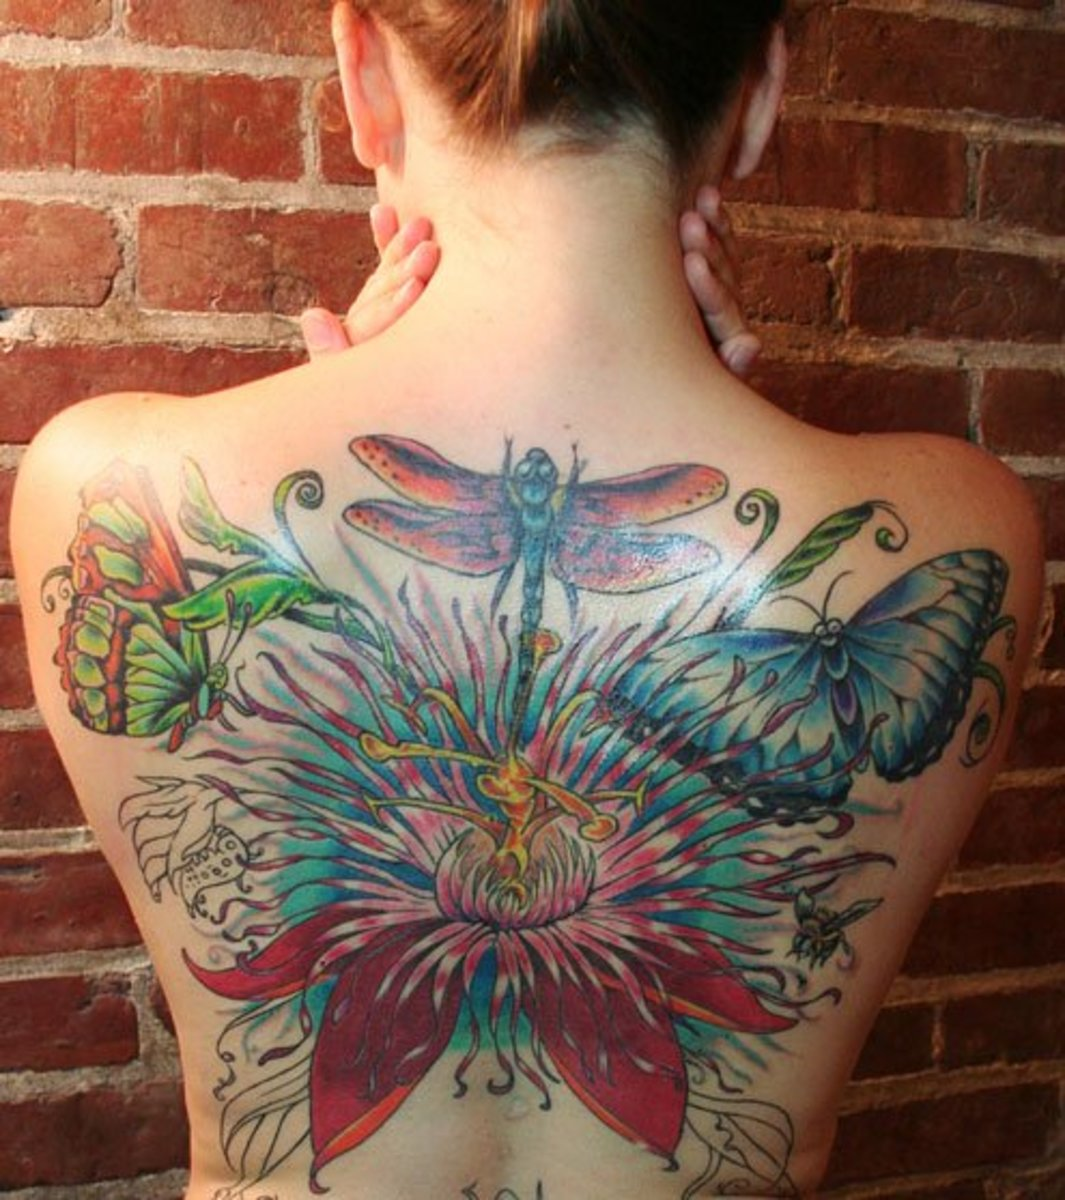 Butterfly Tattoos Becoming the Rage